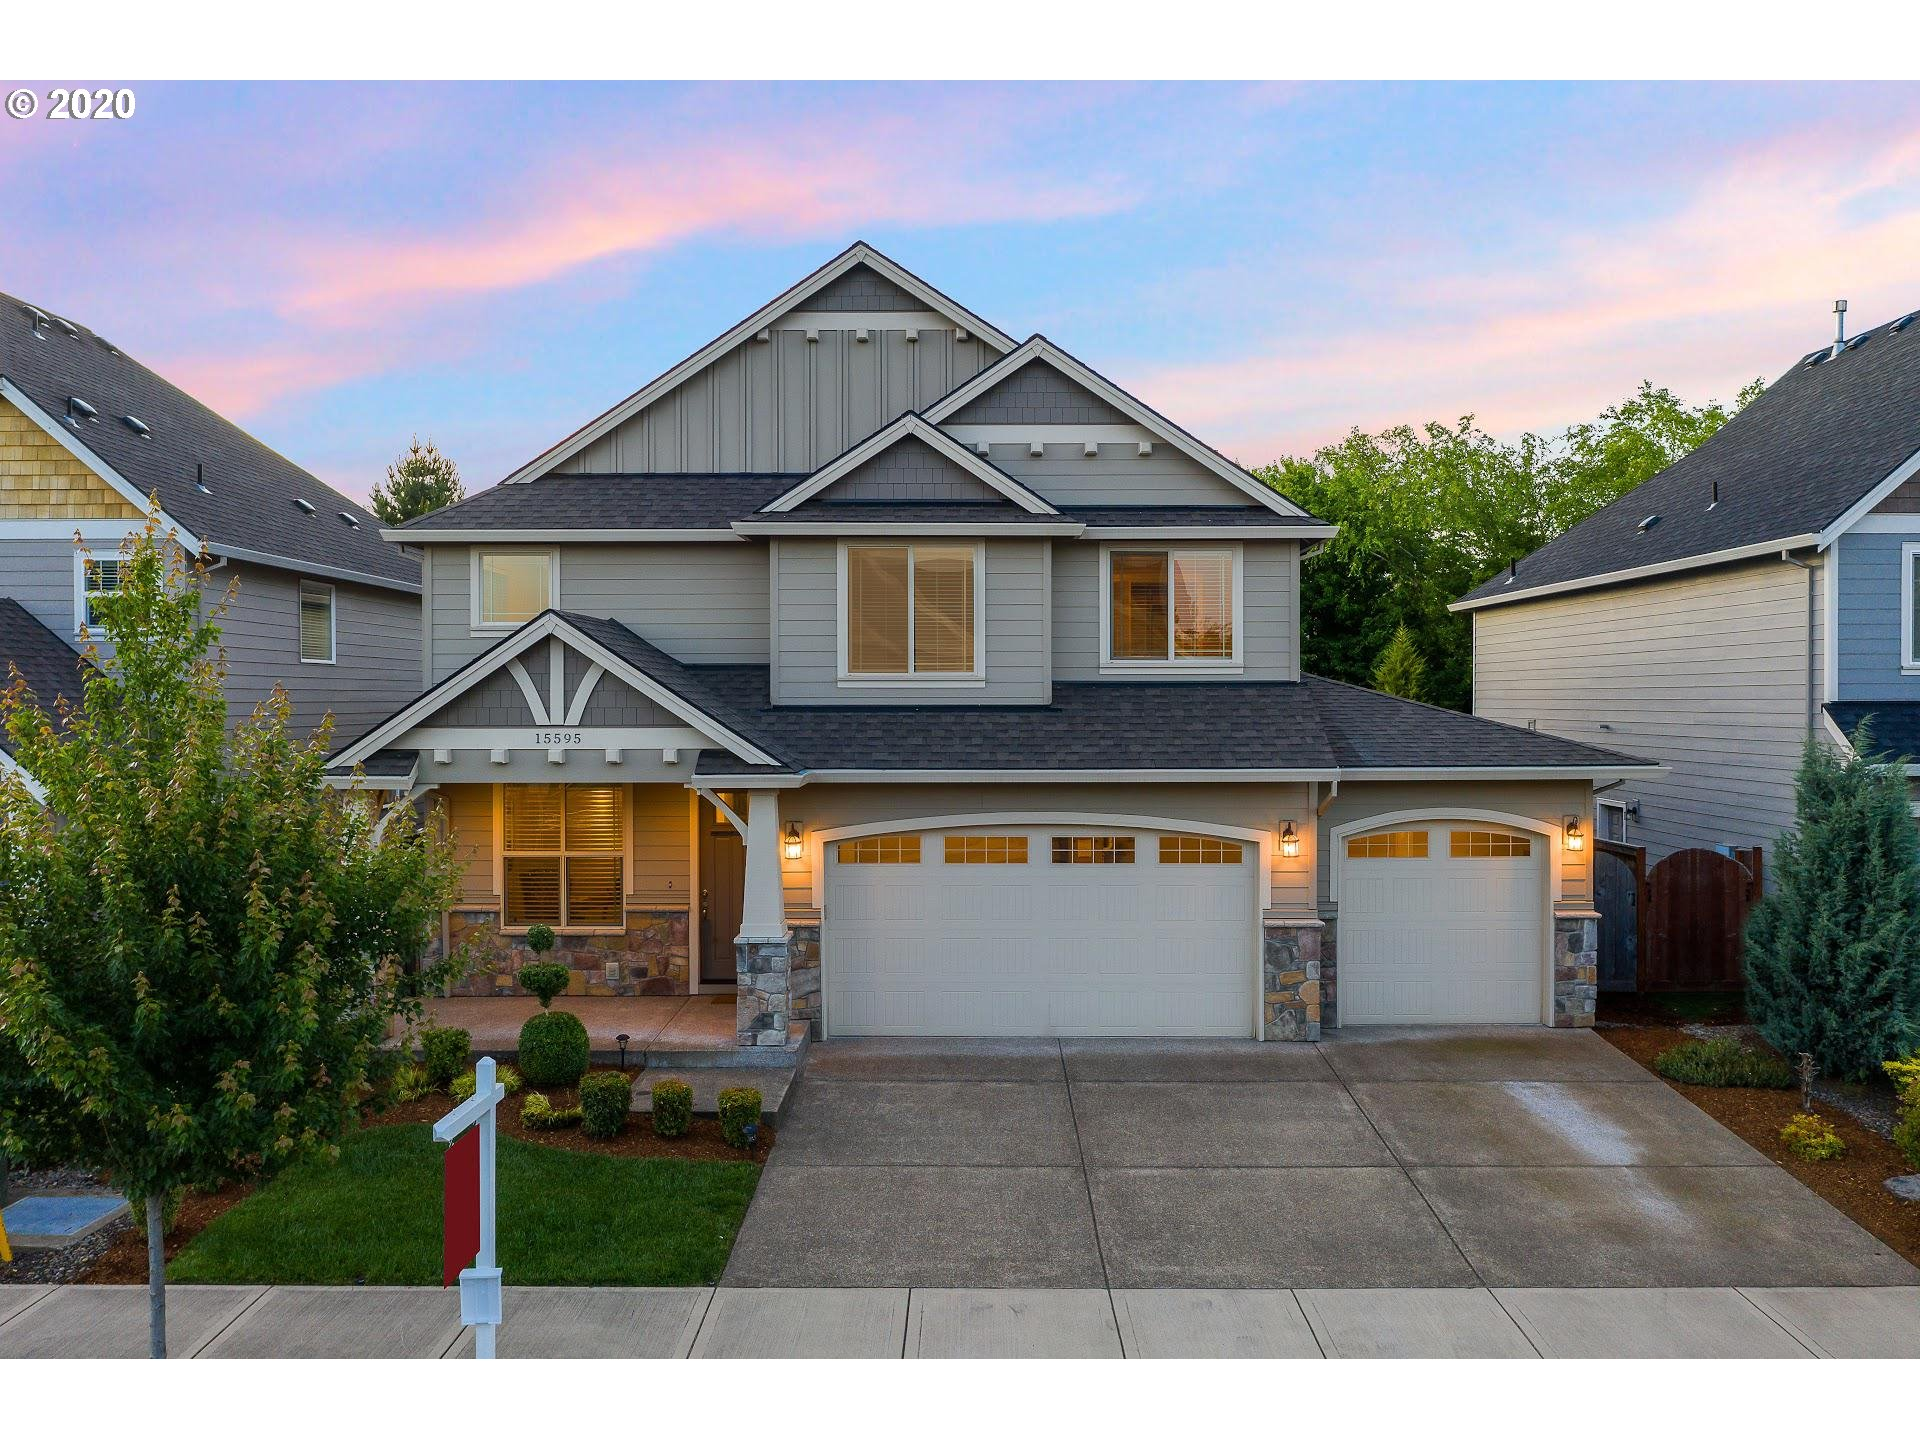 Turnkey better then new multi-generational home w/ amazing value! 4 bed/2.5 bath open & grand floor plan in desirable Hidden Falls community (nature park & pioneer park steps away)! Den/office on main, bonus room upstairs, RARE 4 car garage + sprinklers. Low maintenance & NO HOA!  W/D/F & A/C Included.  4 mins to New Seasons/HV Town Center, 8 mins to I-205, 20 mins to PDX!  See Floorplan/3D tour!  OPEN SUN 12-3PM & MON 1-3PM.